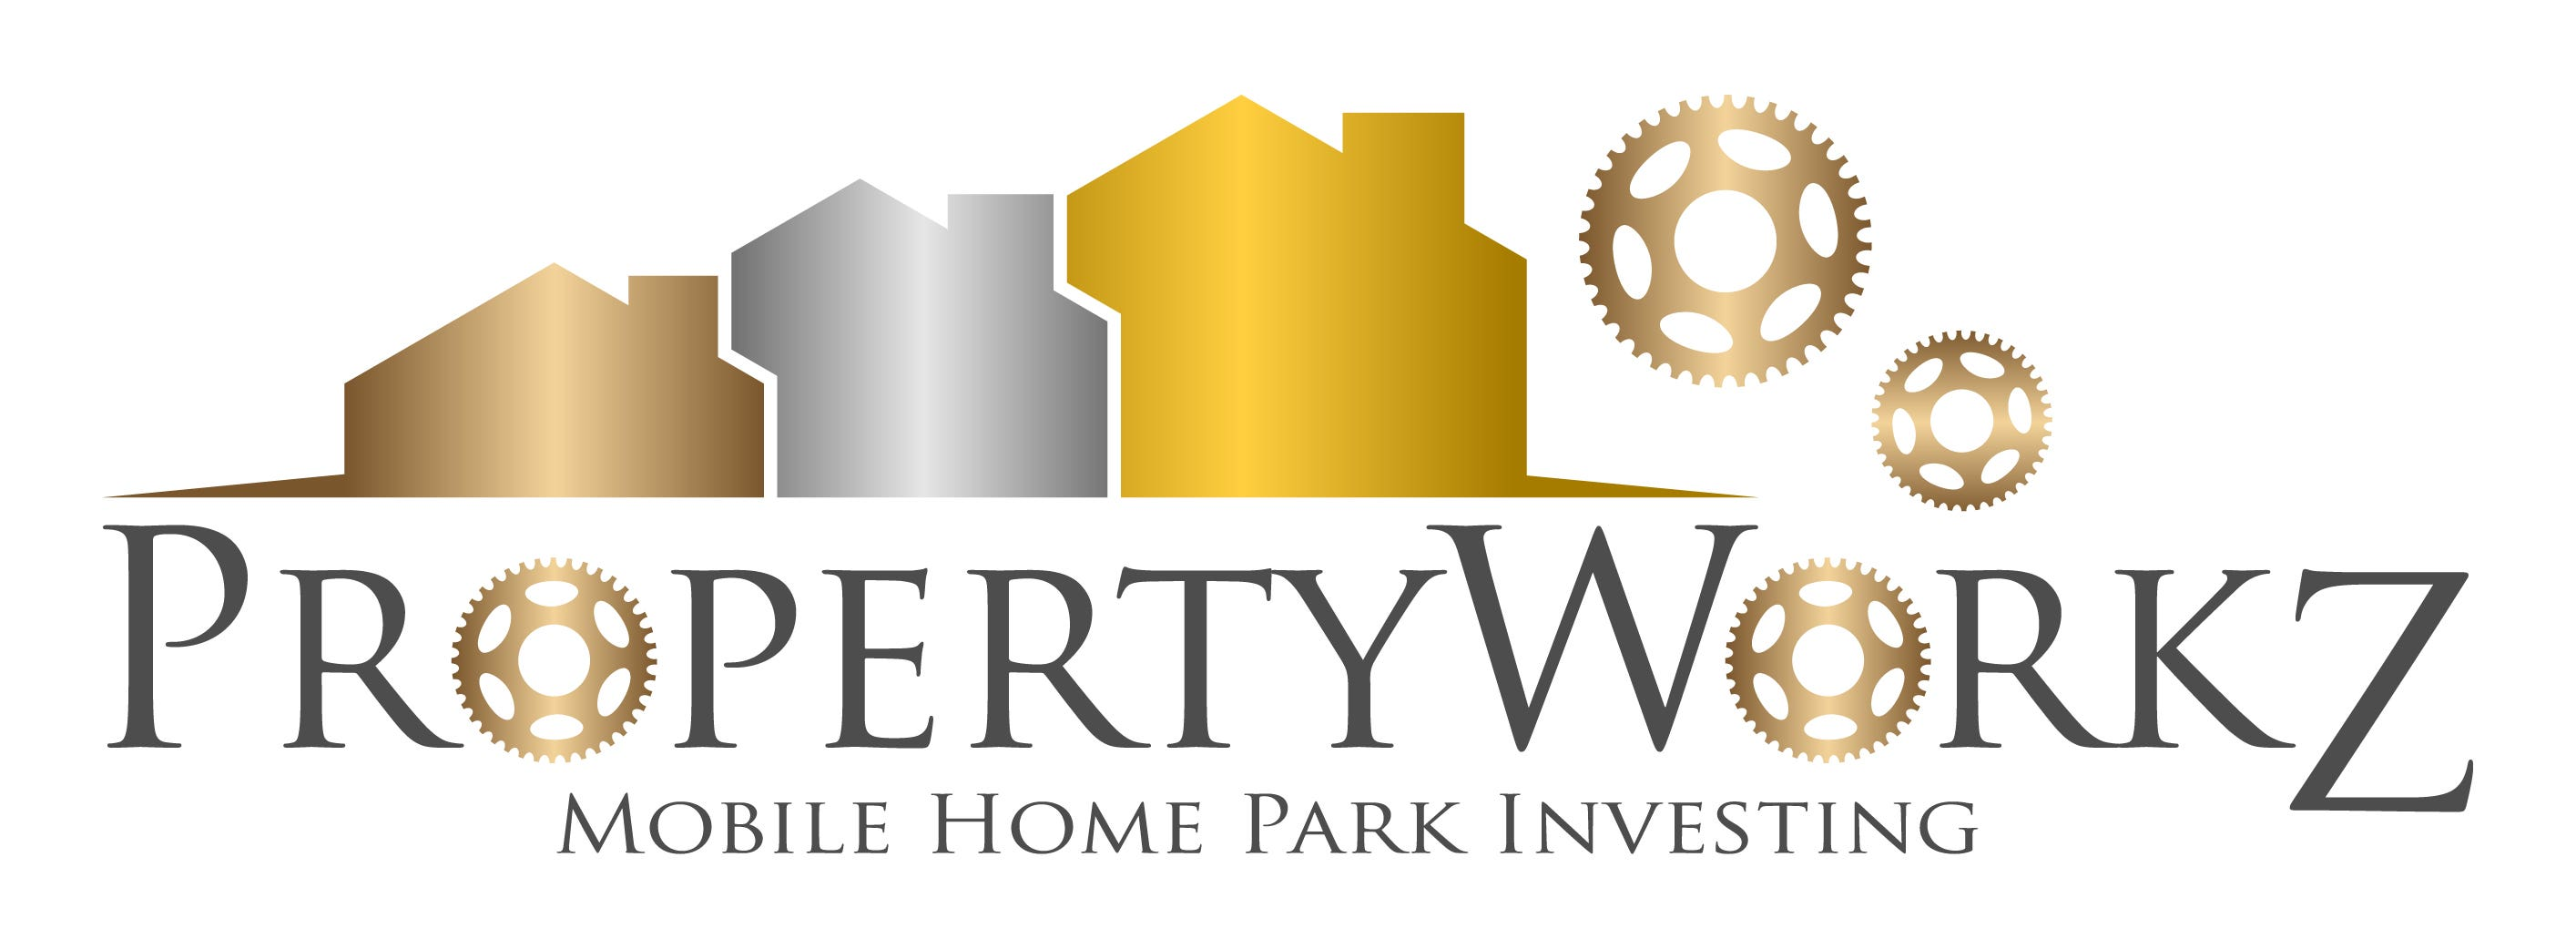 Mobile Home Park Investing School